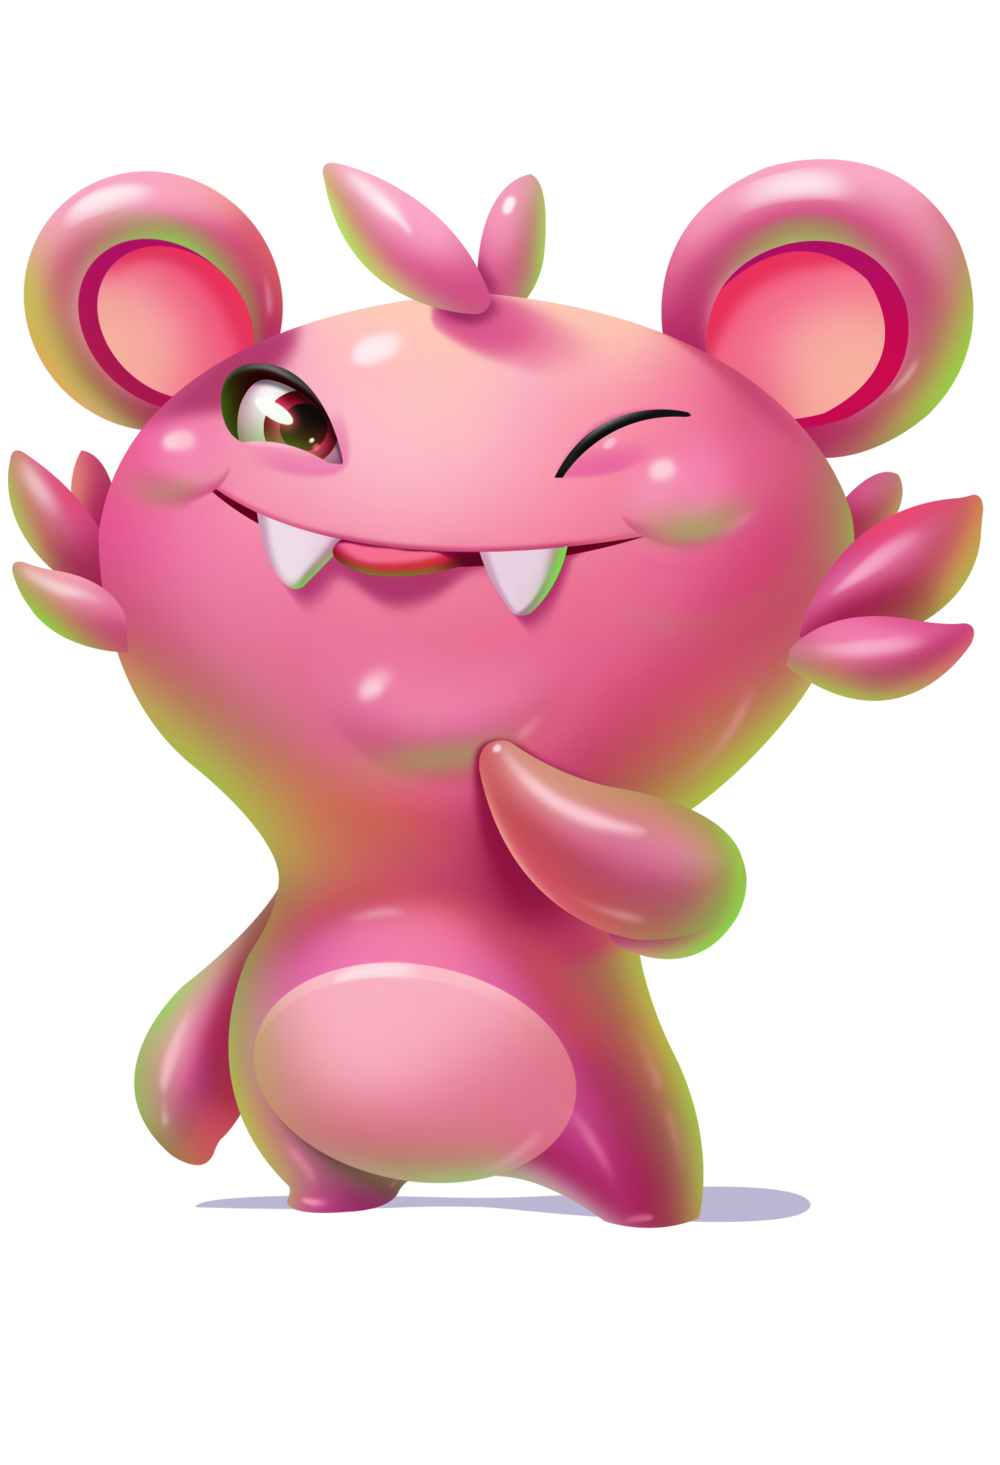 PP_BLD_CH_mon-pink.png